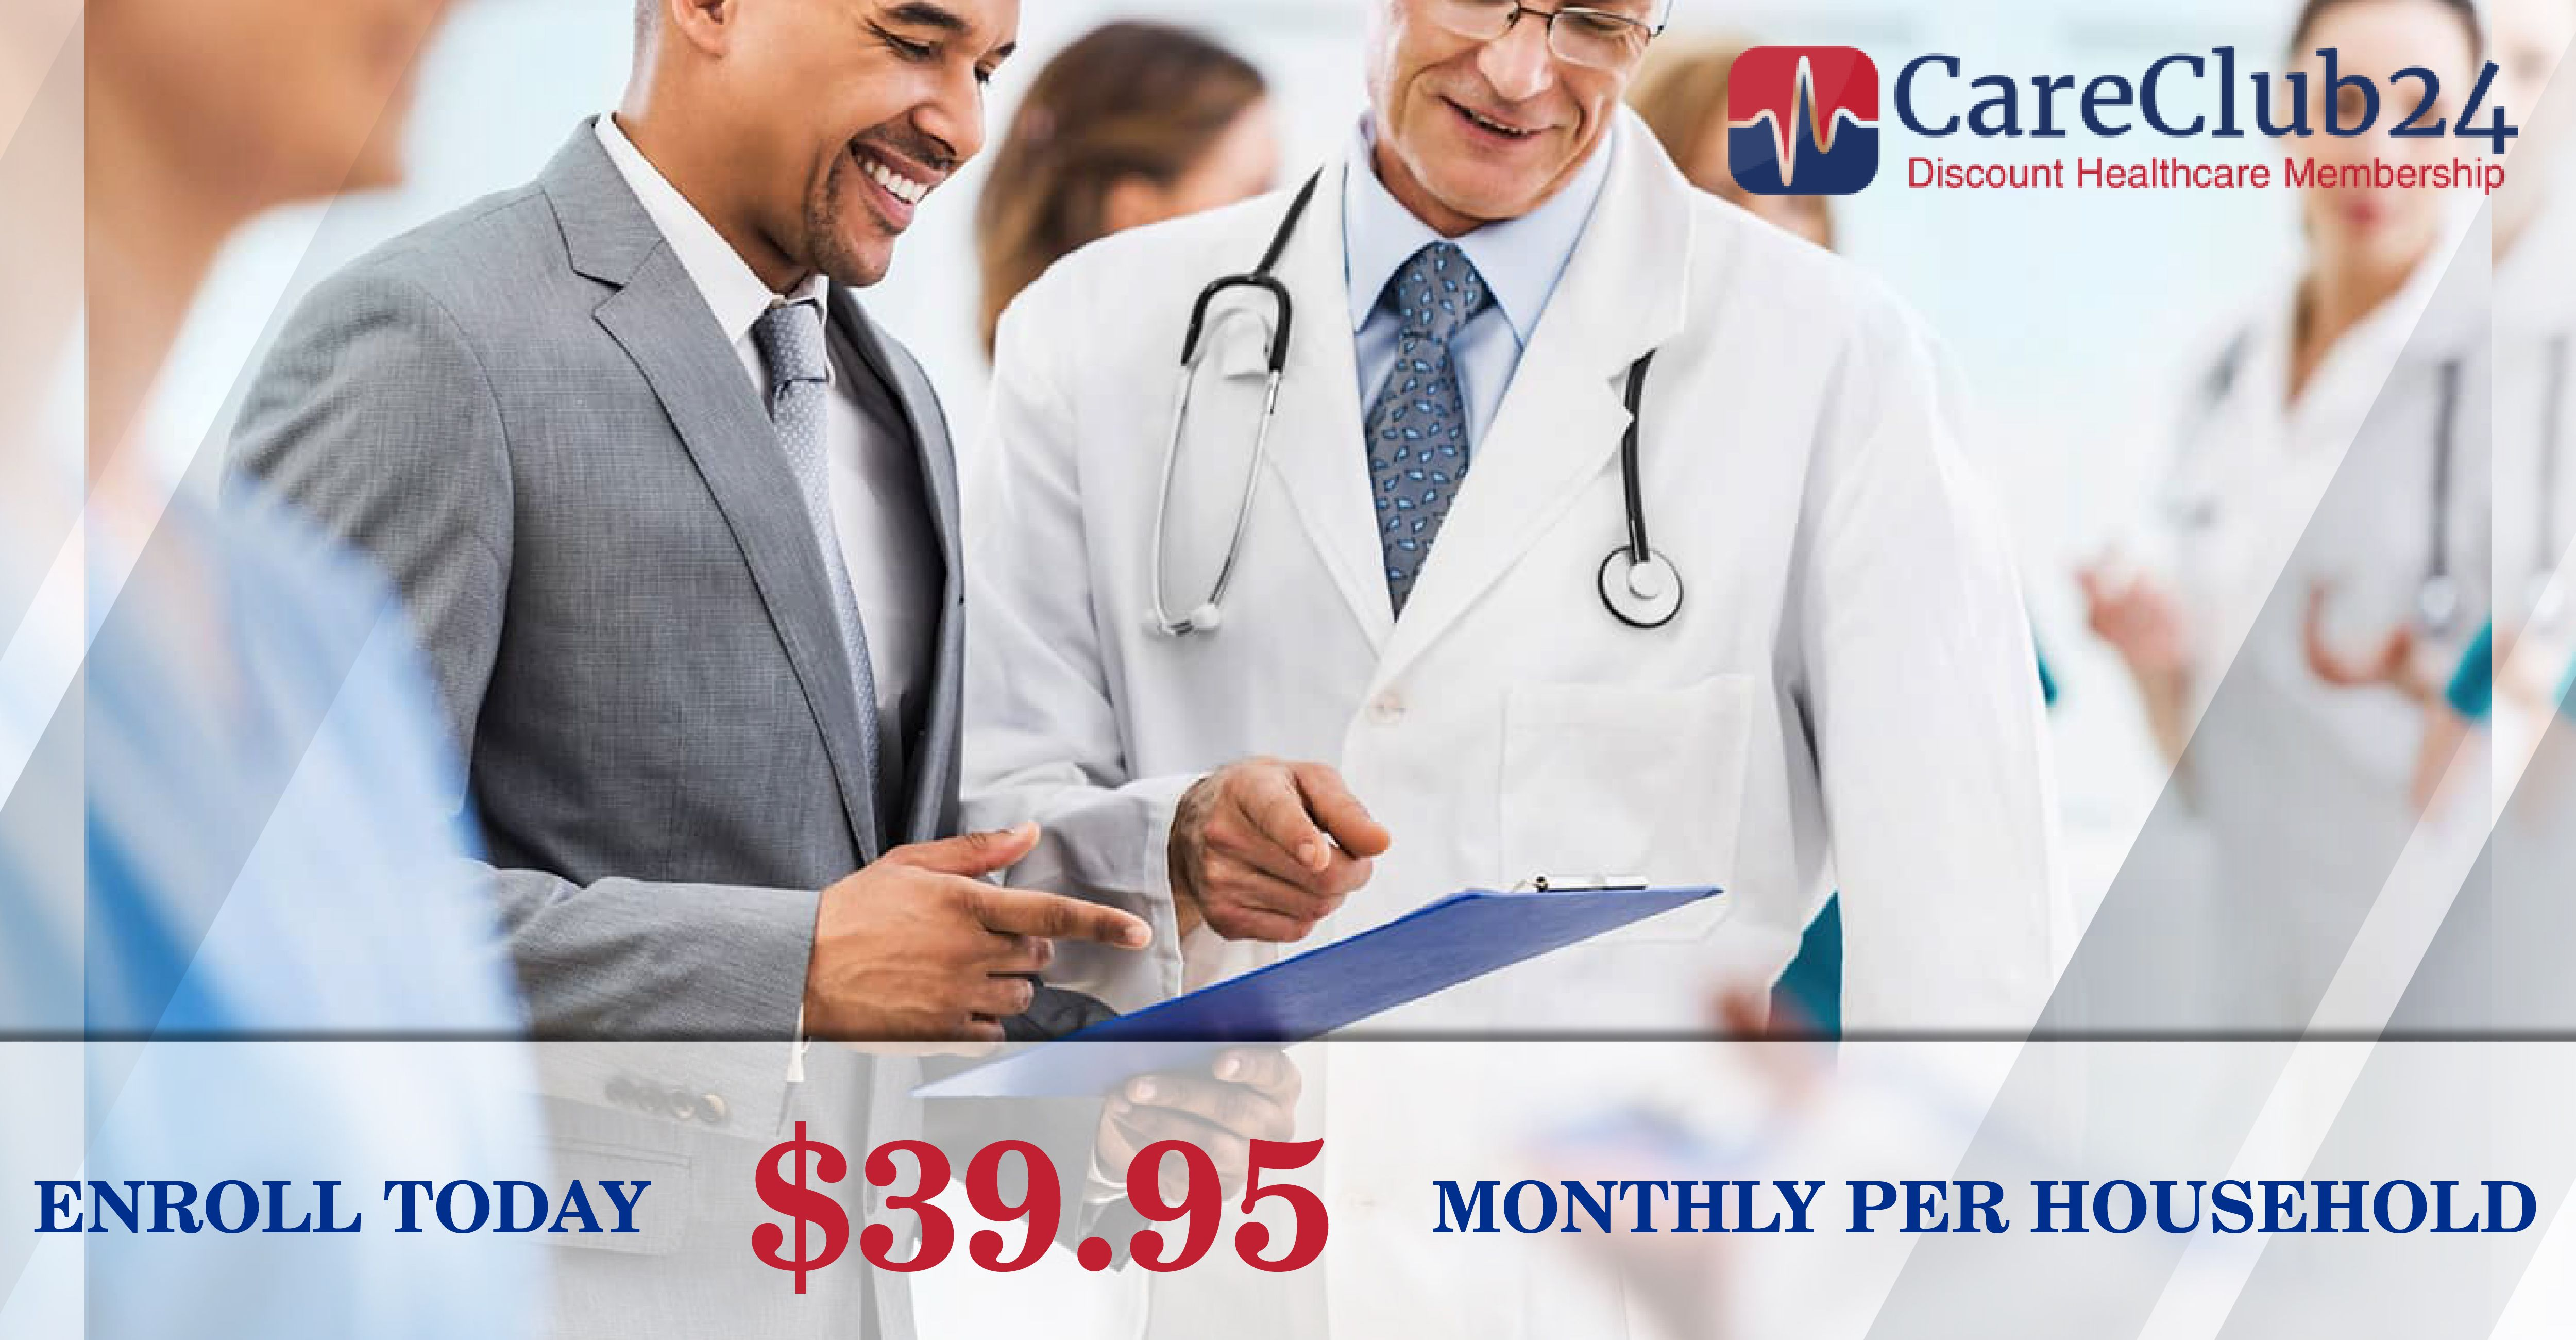 Careclub24 Is A Nationwide Discount Healthcare Membership That